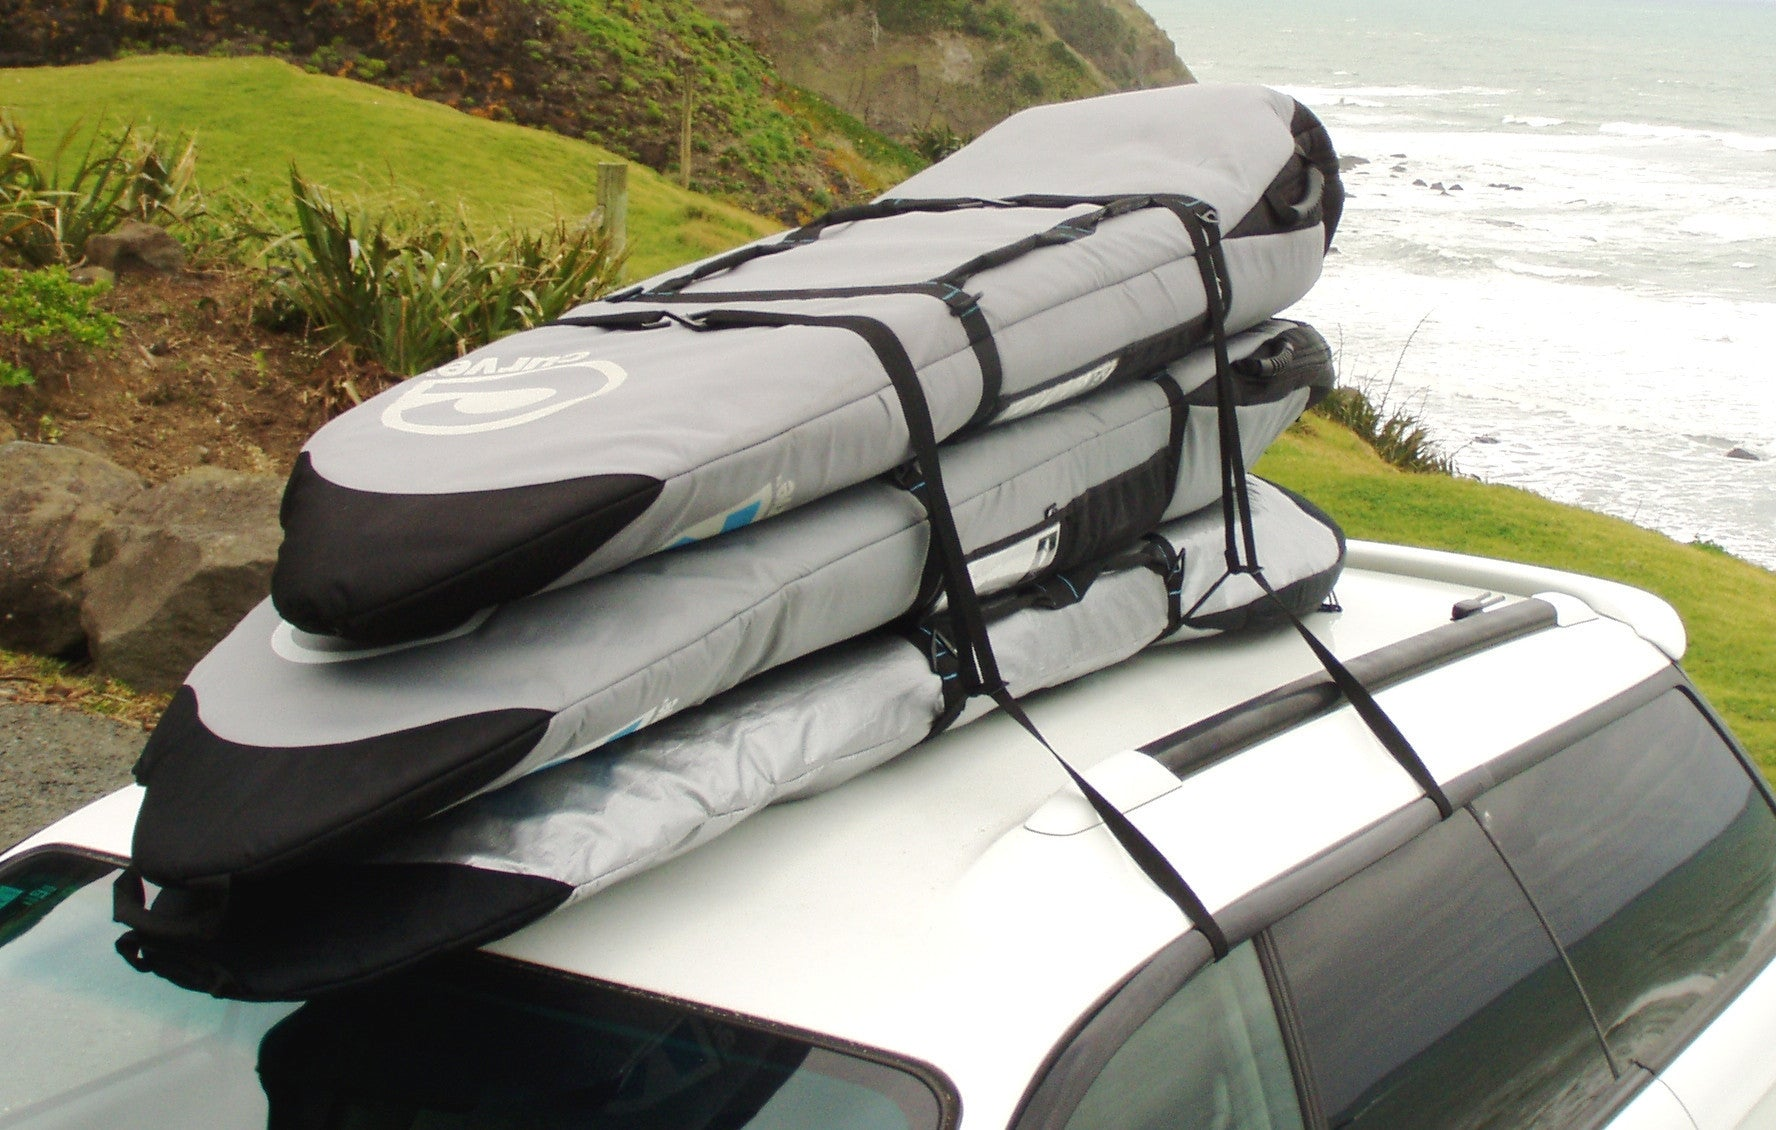 roof package up board with stand paddleboard rack scott car paddle bungee soft cyclone burke foam racks